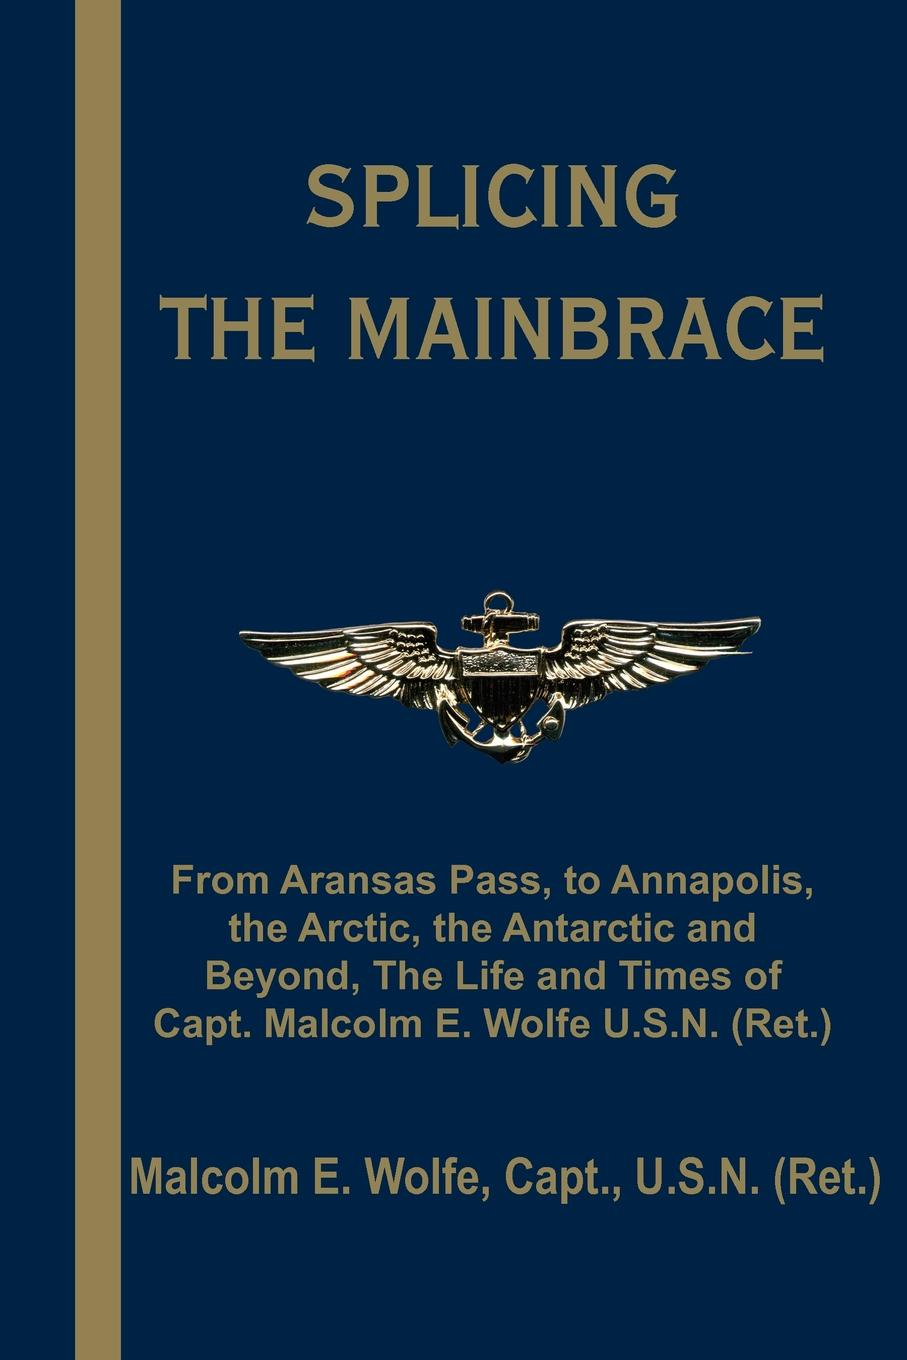 Malcolm E. Wolfe Splicing the Mainbrace. From Aranas Pass, to Annapolis, the Arctic, the Antarctic and Beyond, the Life and Times of Capt. Malcolm E. Wolfe U.S malcolm x the autobiography of malcolm x